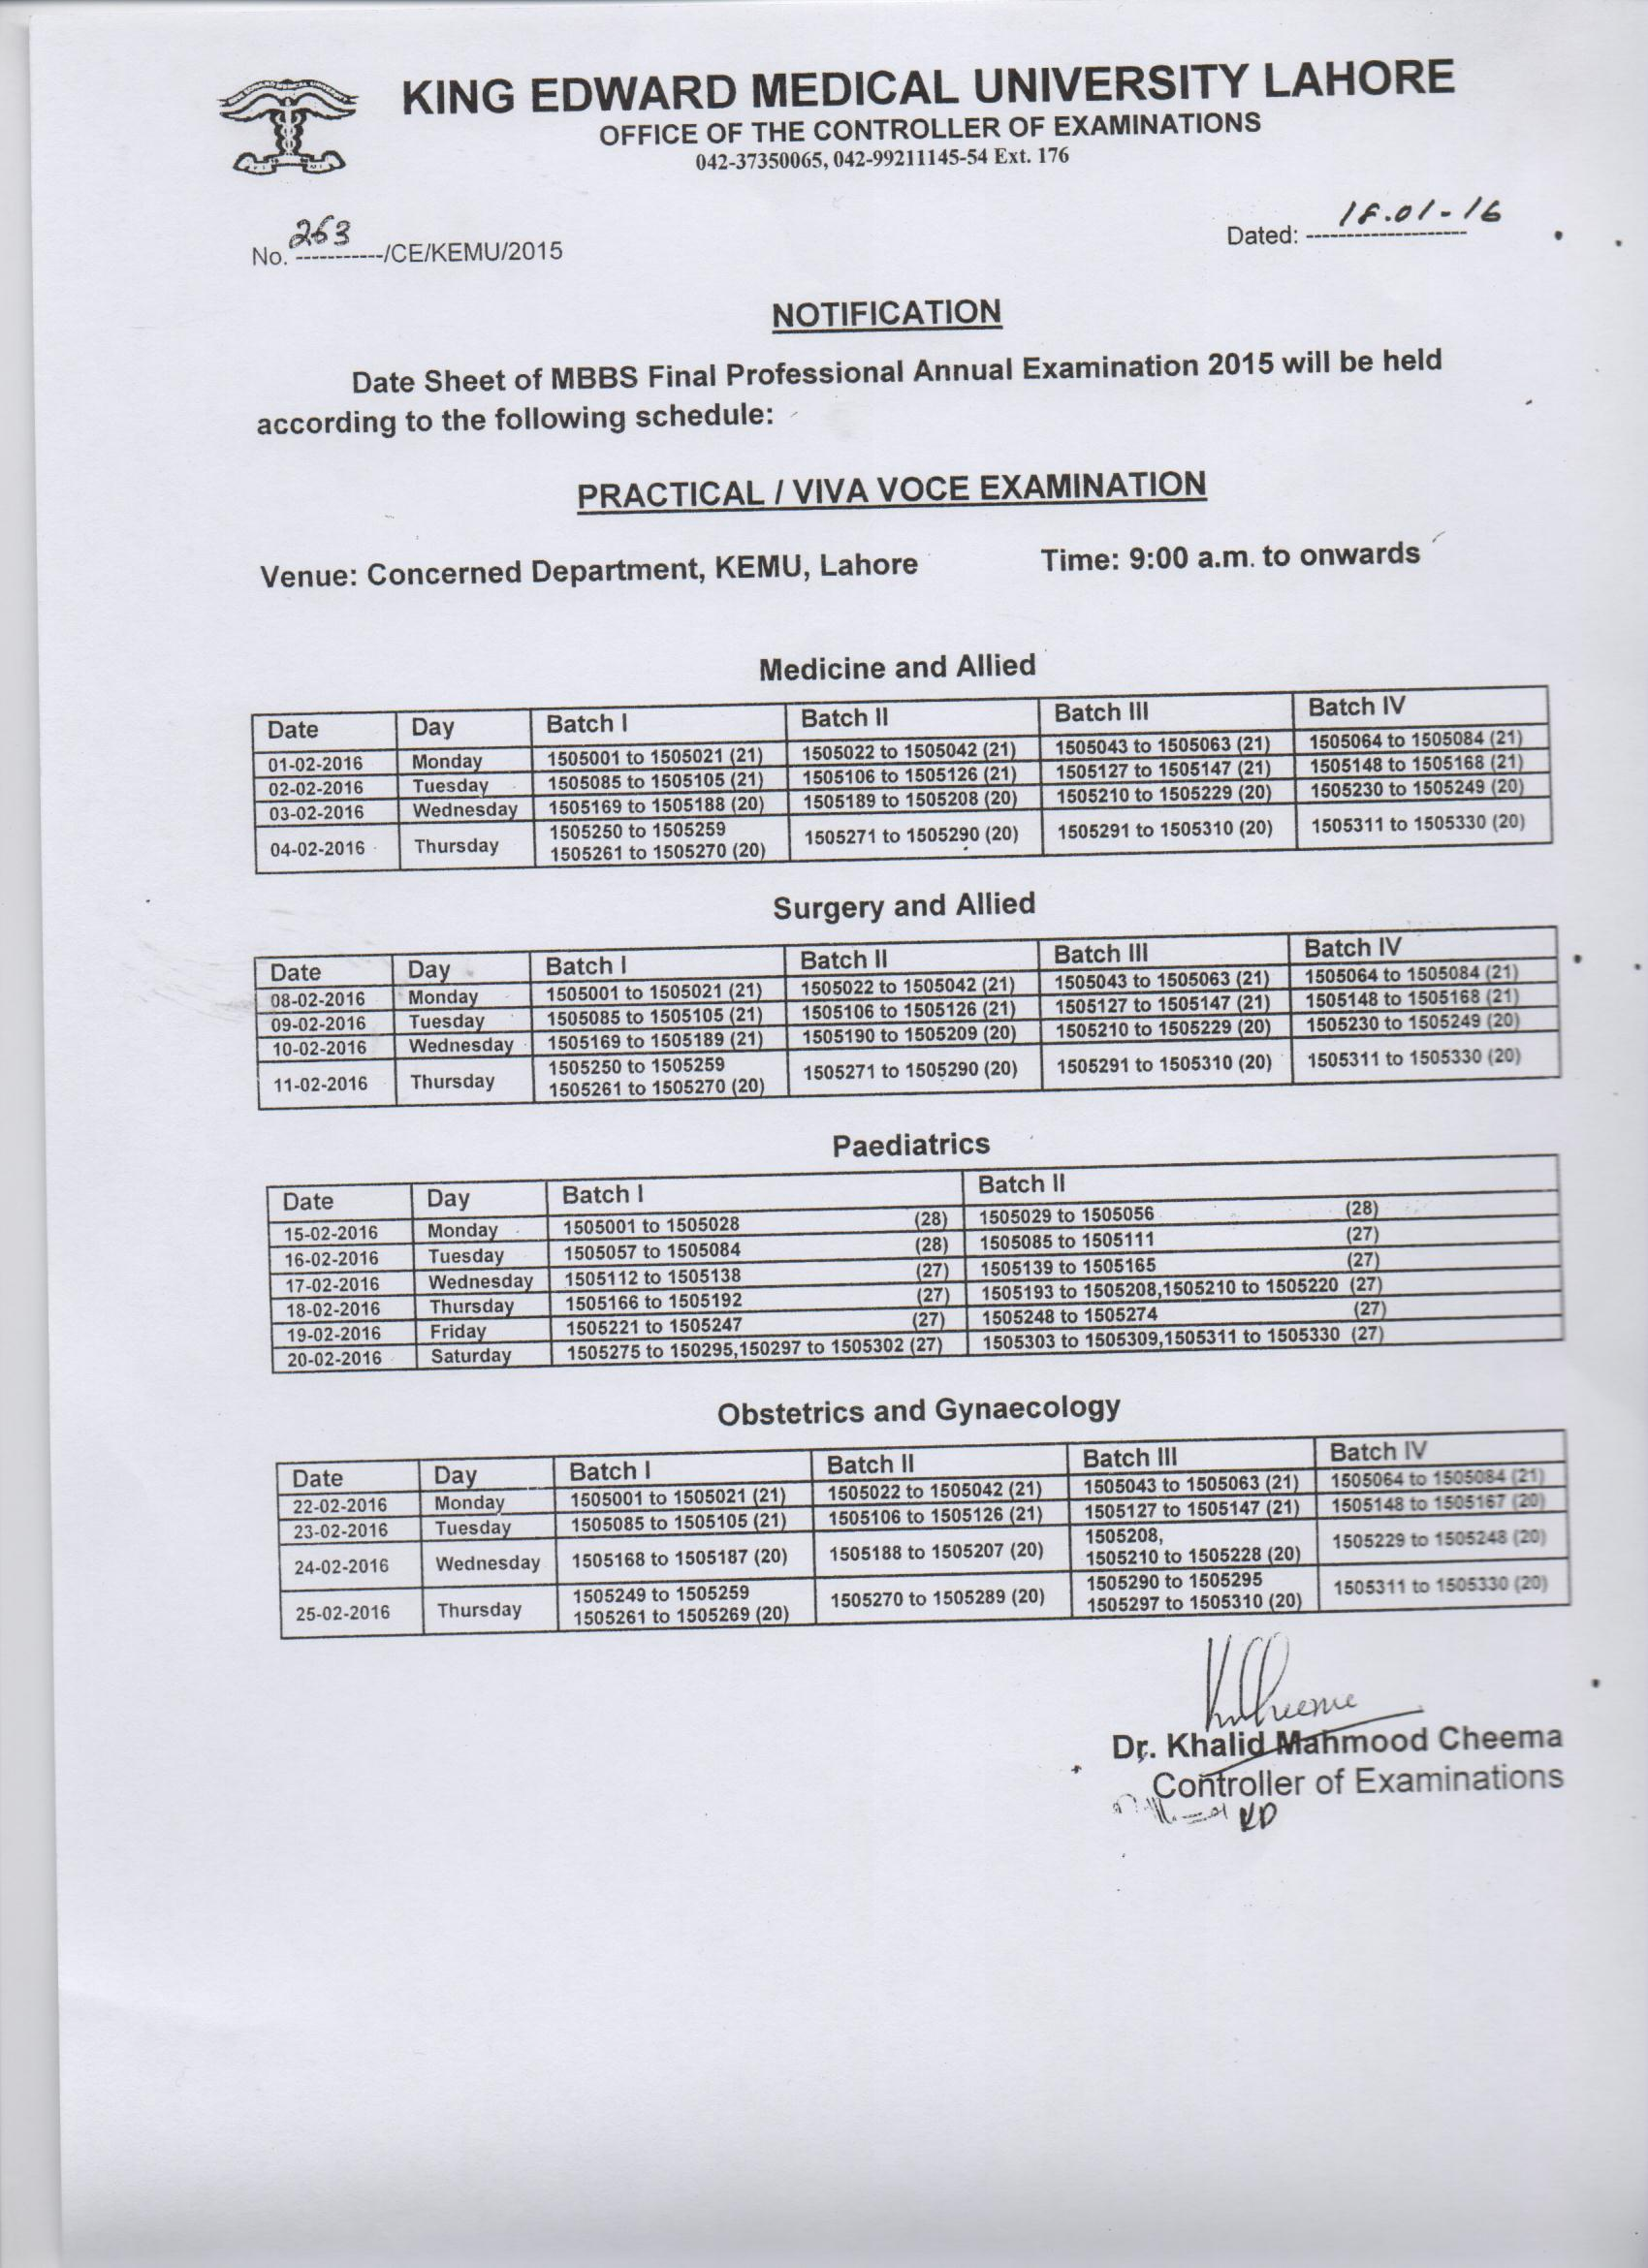 Date Sheet of Practical/ Viva Voce Examination MBBS Final Professional Annual Examination 2015